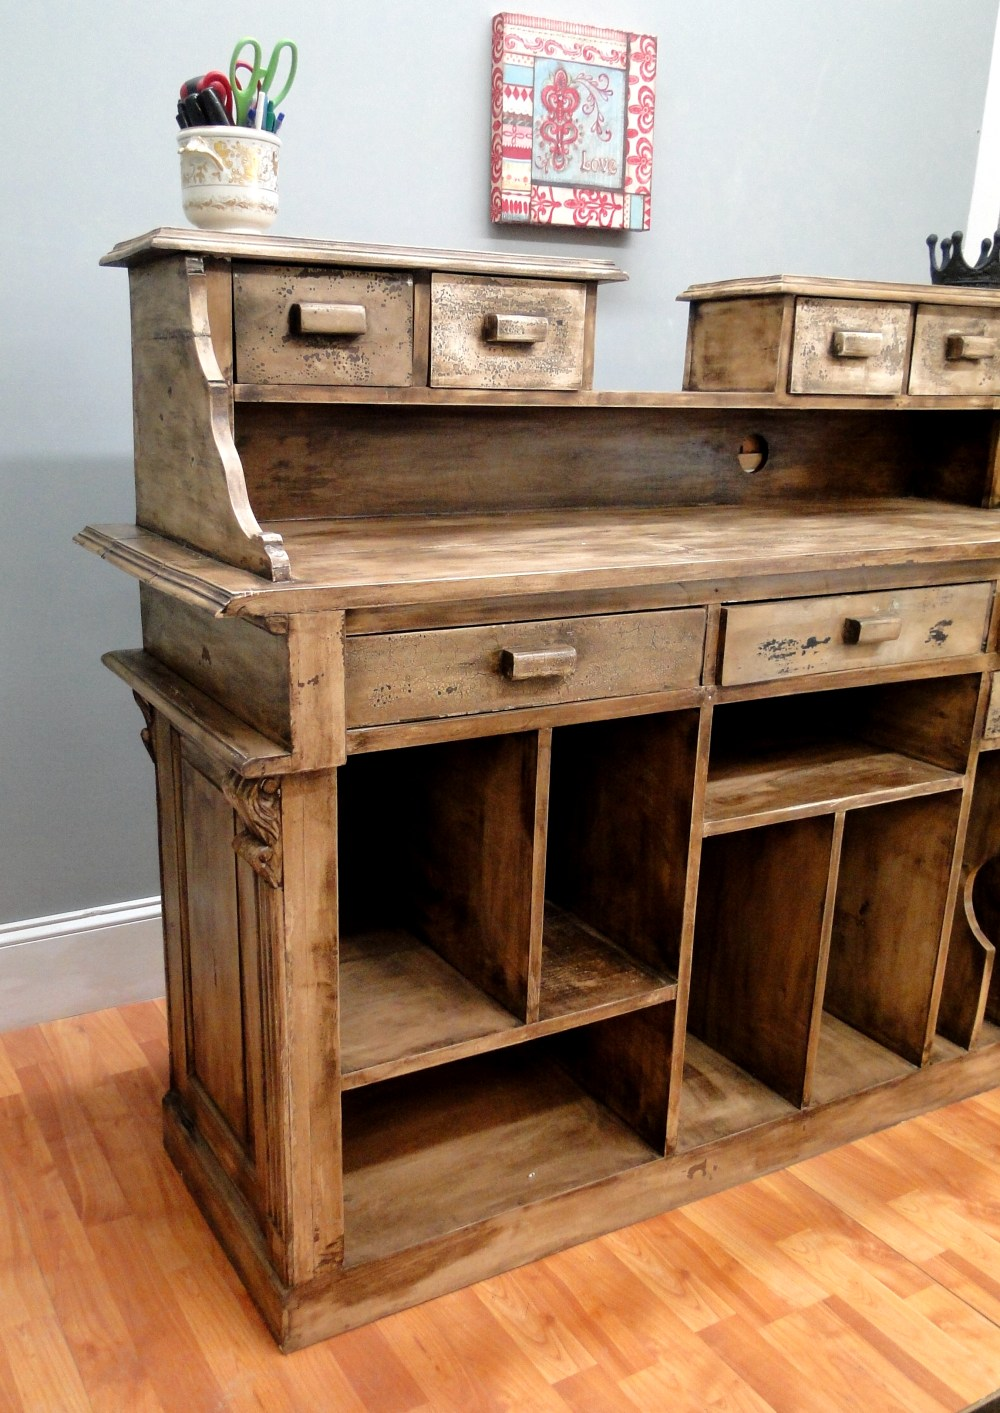 of bookcase desk ideas give bulletin perfect drawer deep include table sliding white plenty cottage options with workspace lower kids size students board study young a drawers room for storage shelf best style chair and country design wide more antique full pin